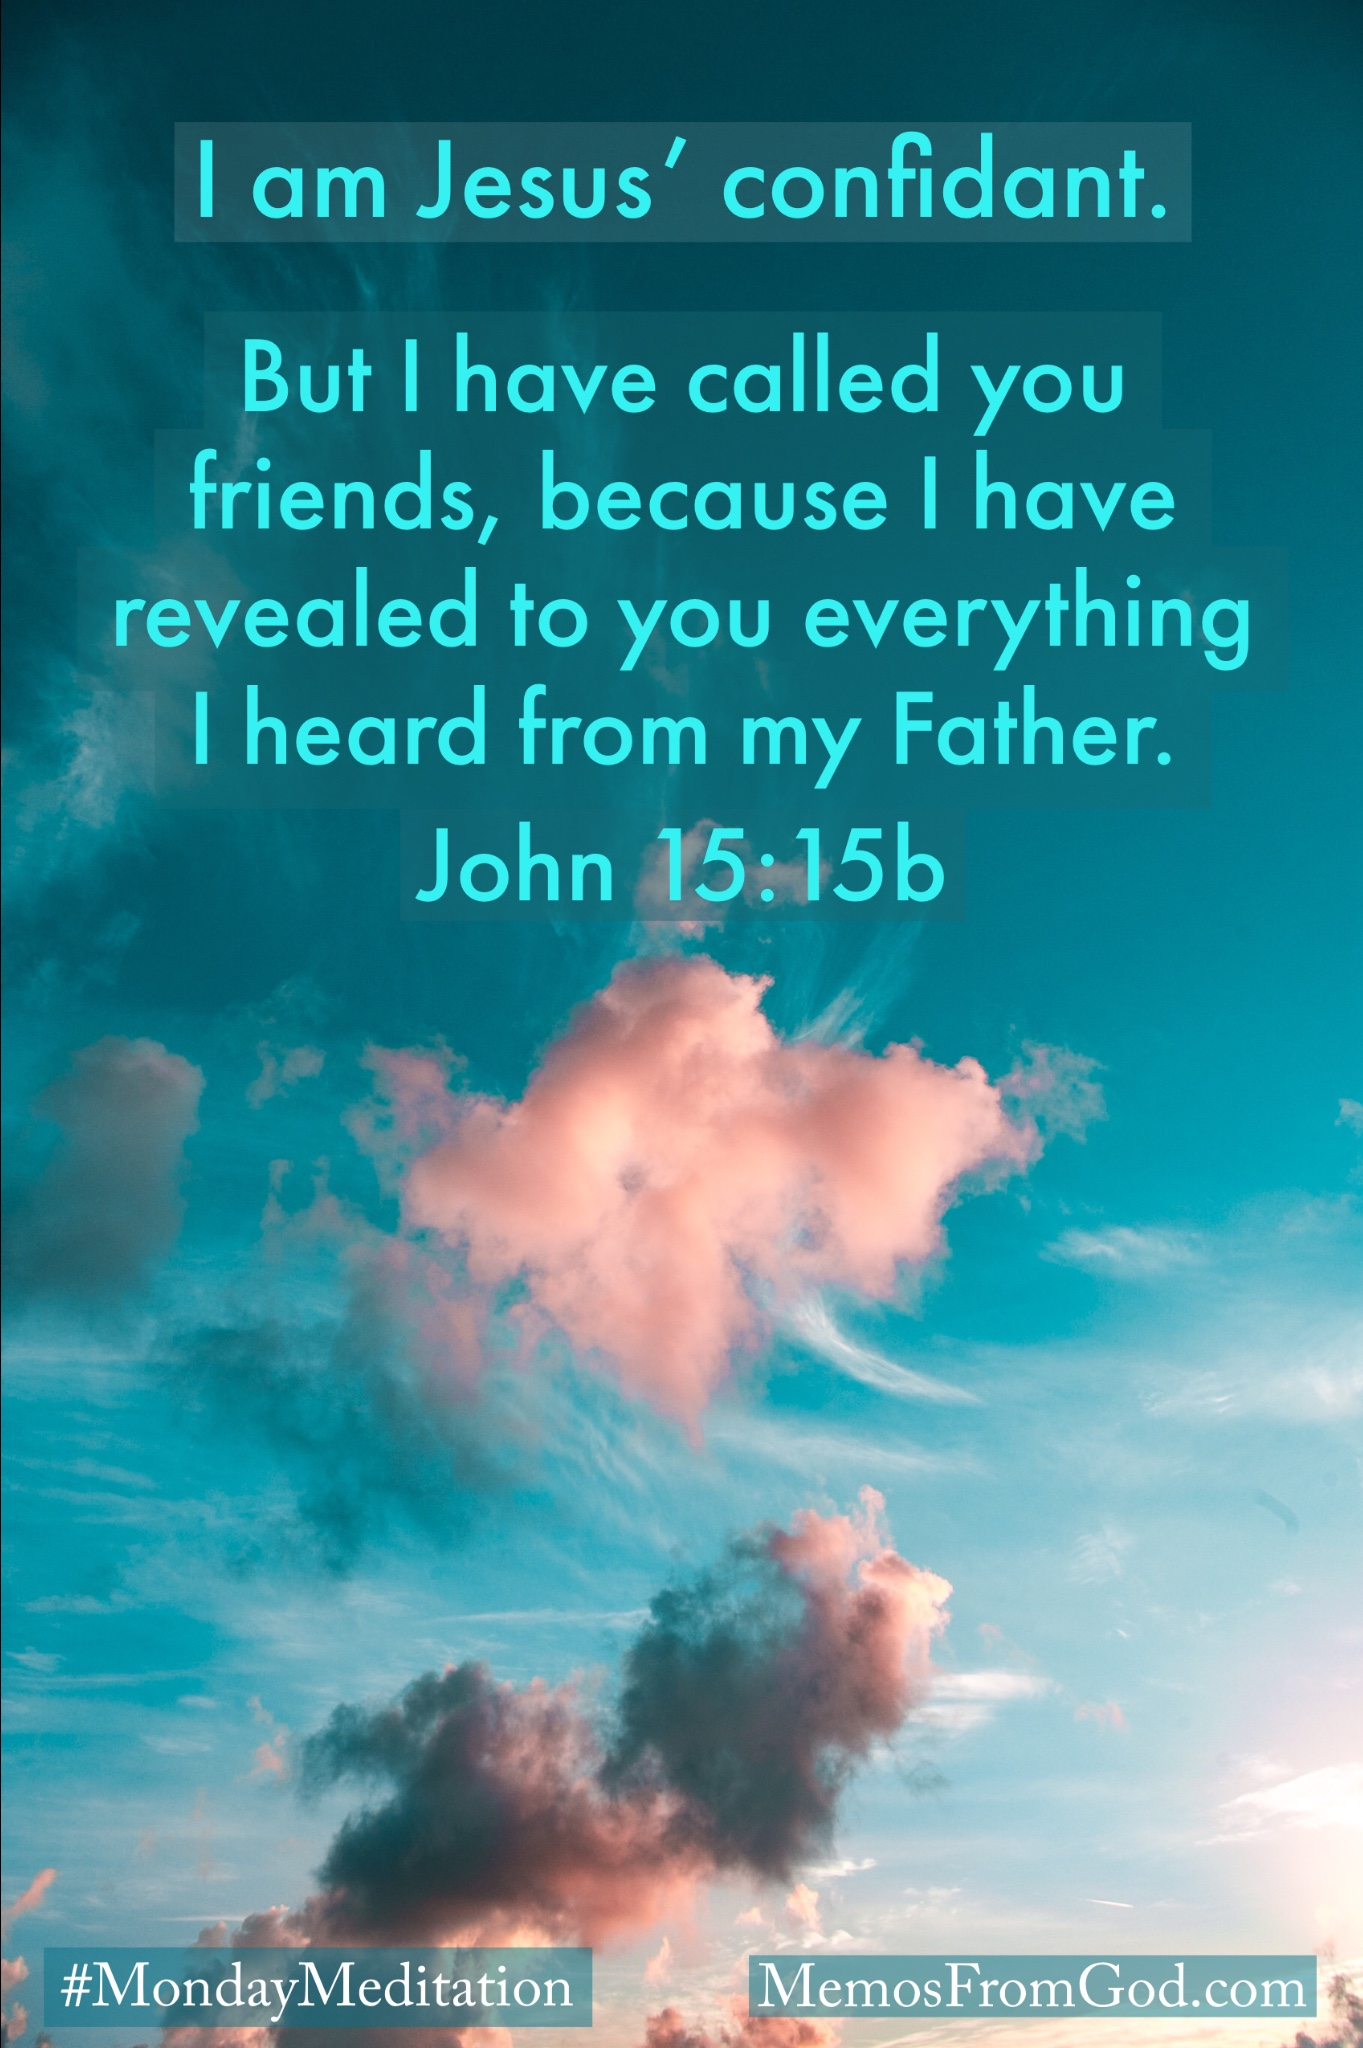 Pink clouds in a turquoise sky. Caption: But I have called you friends, because I have revealed to you everything I heard from my Father. John 15:15b